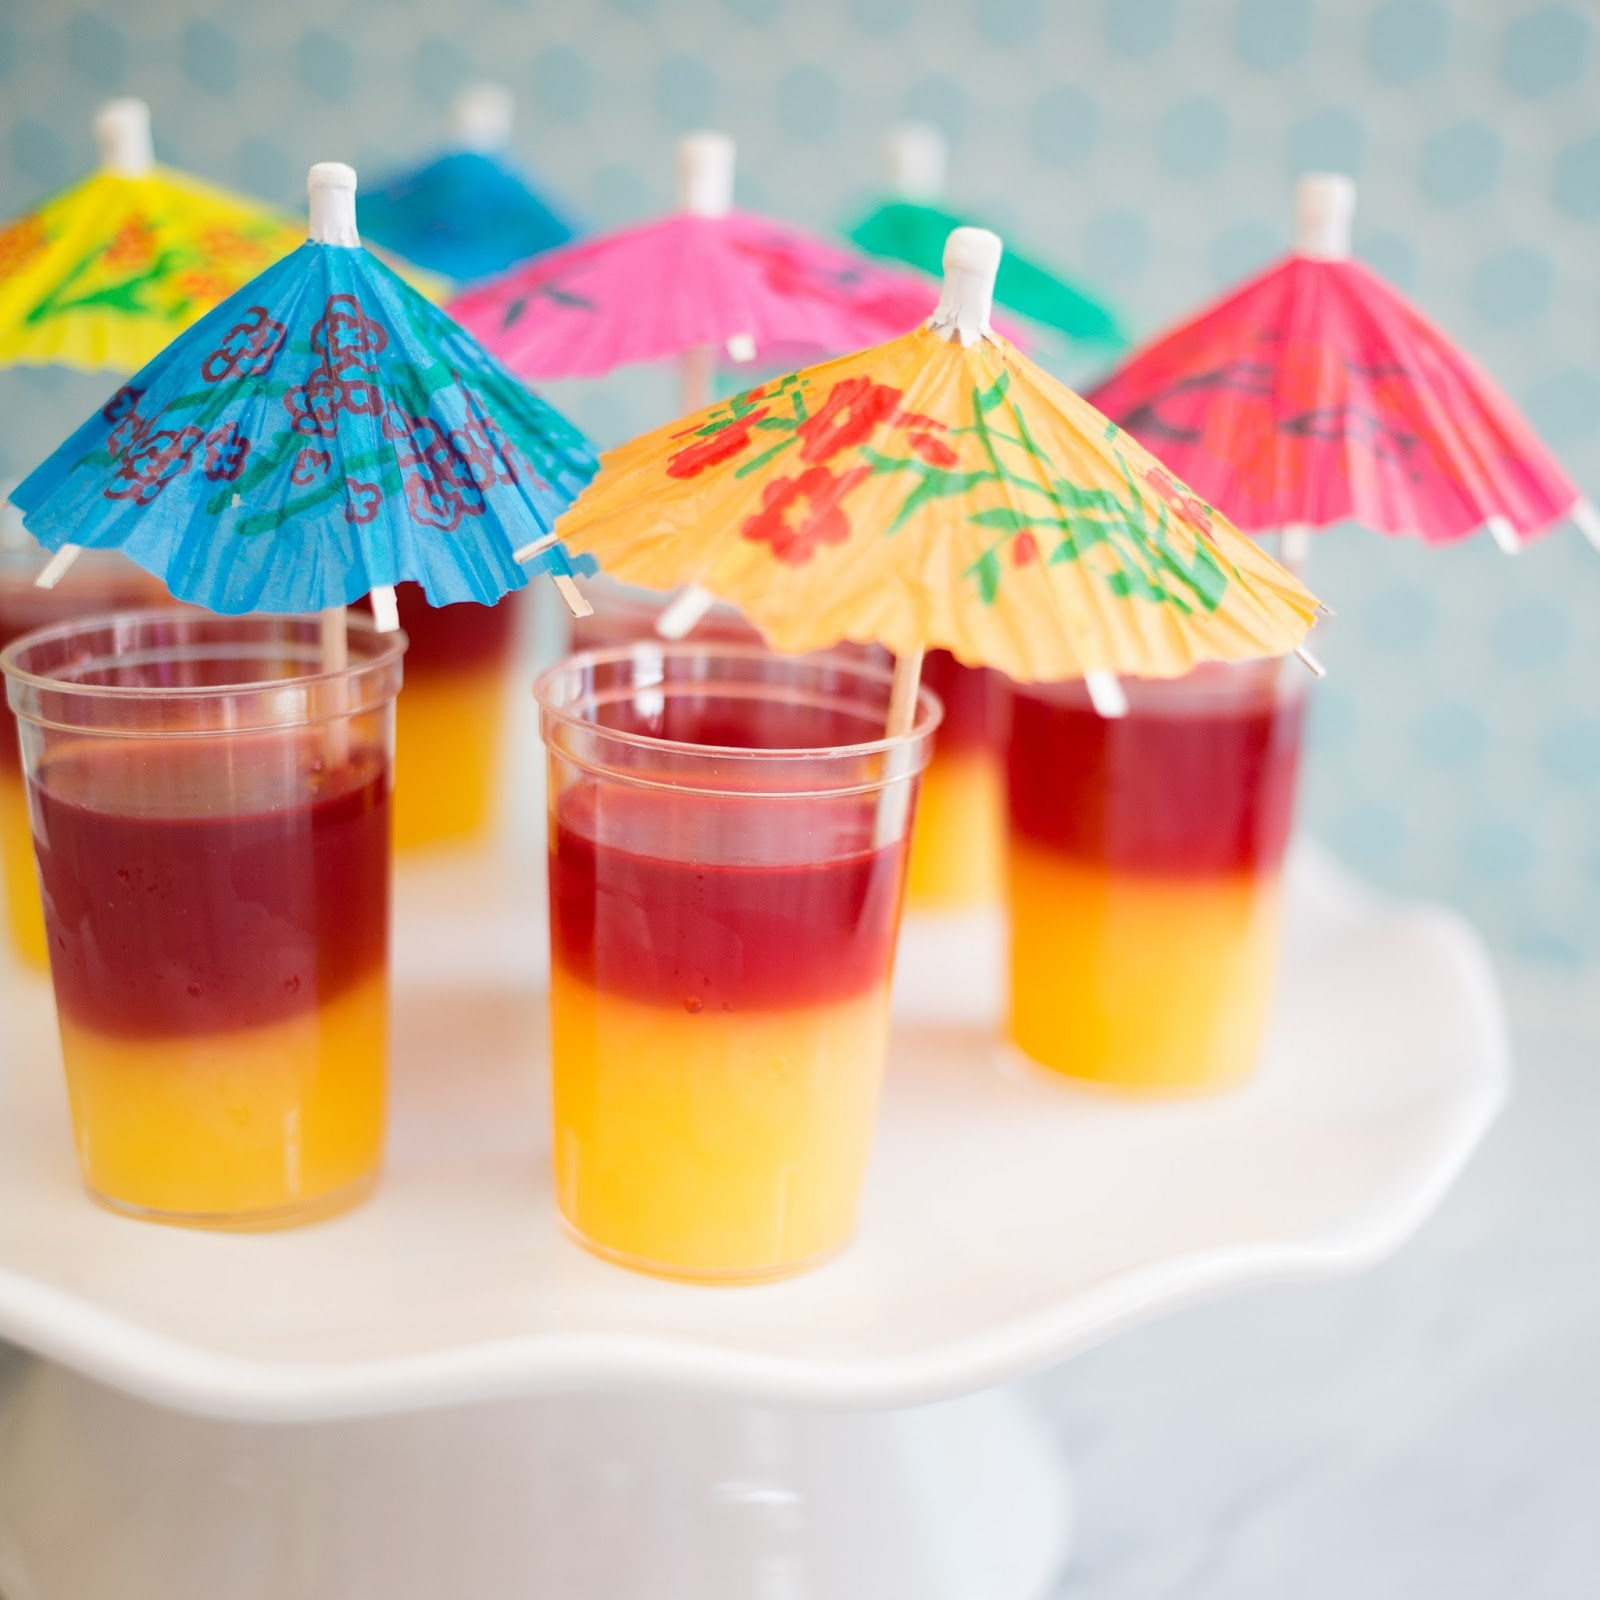 If Jelly Cake Cocktail